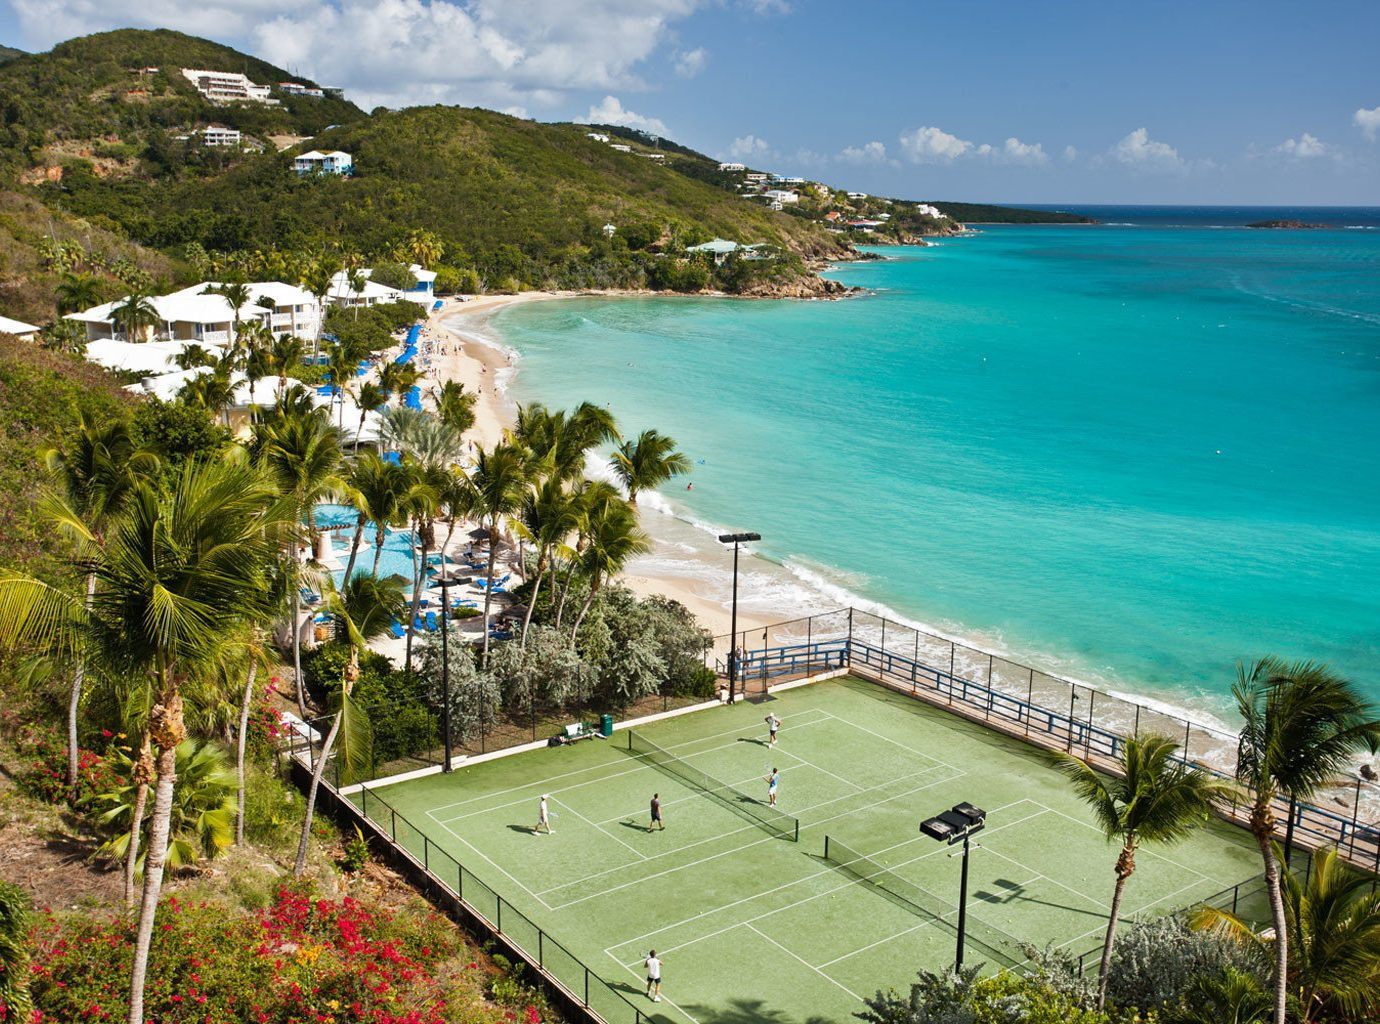 Beach Beachfront Hotels Outdoor Activities Play Resort Scenic views Sport Trip Ideas water sky outdoor mountain vacation Coast Sea Nature sport venue swimming pool caribbean bay estate cape overlooking hillside